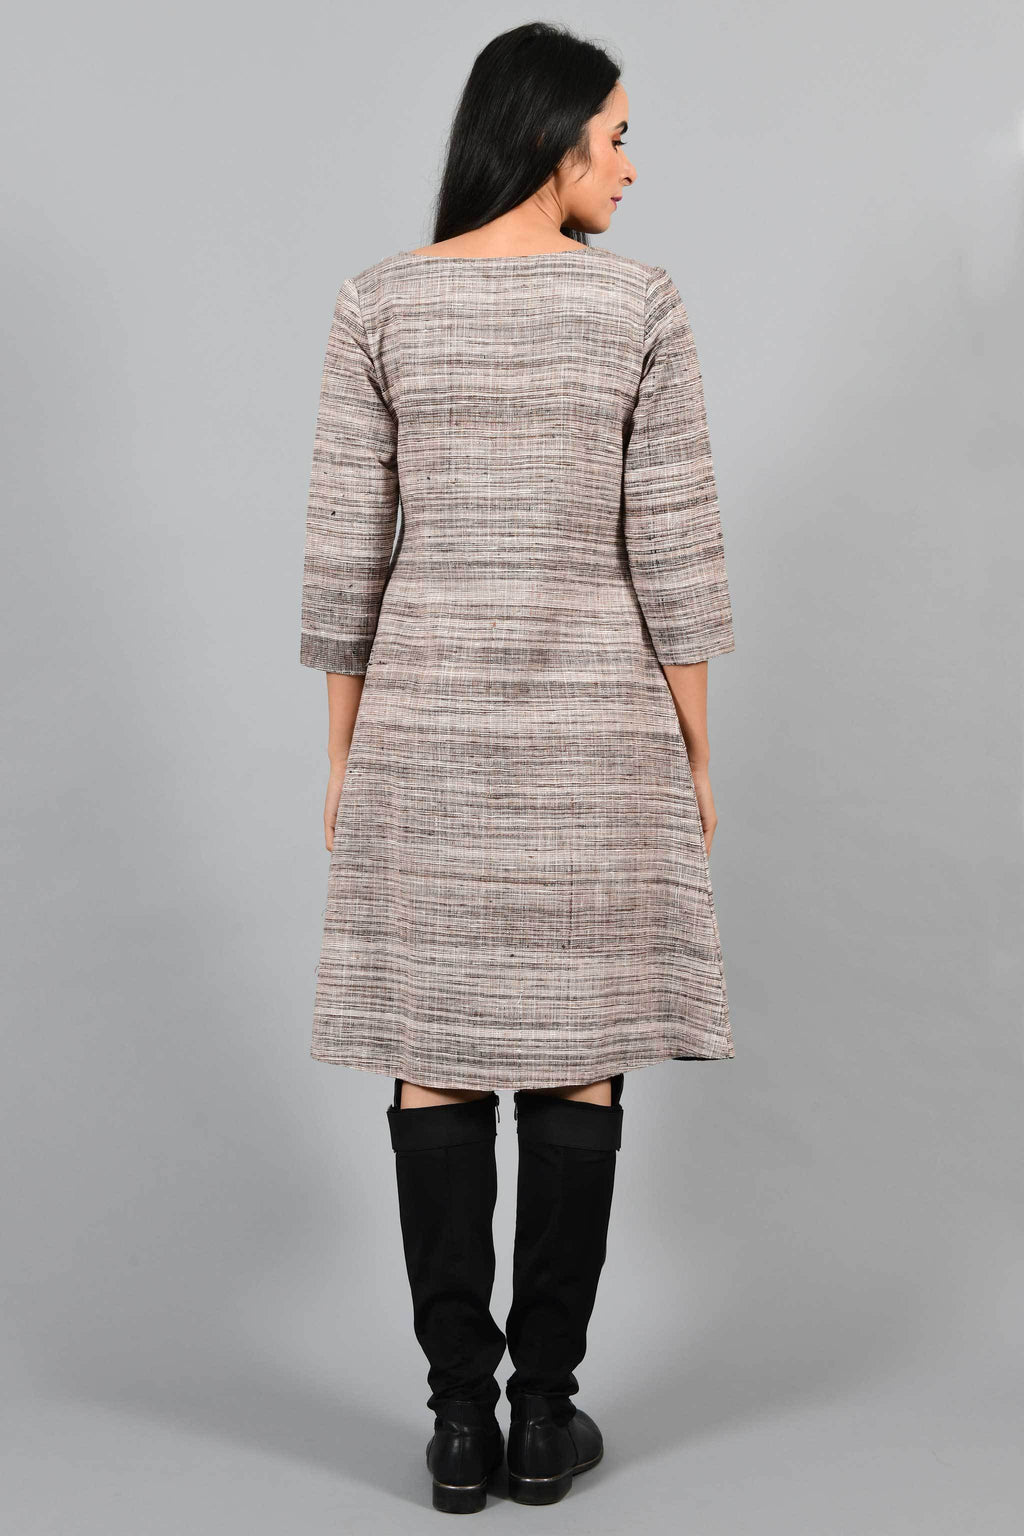 Back pose of an Indian Womenswear female model wearing brown-black textured handspun and handwoven cotton angrakha dress by Cotton Rack with black boots.